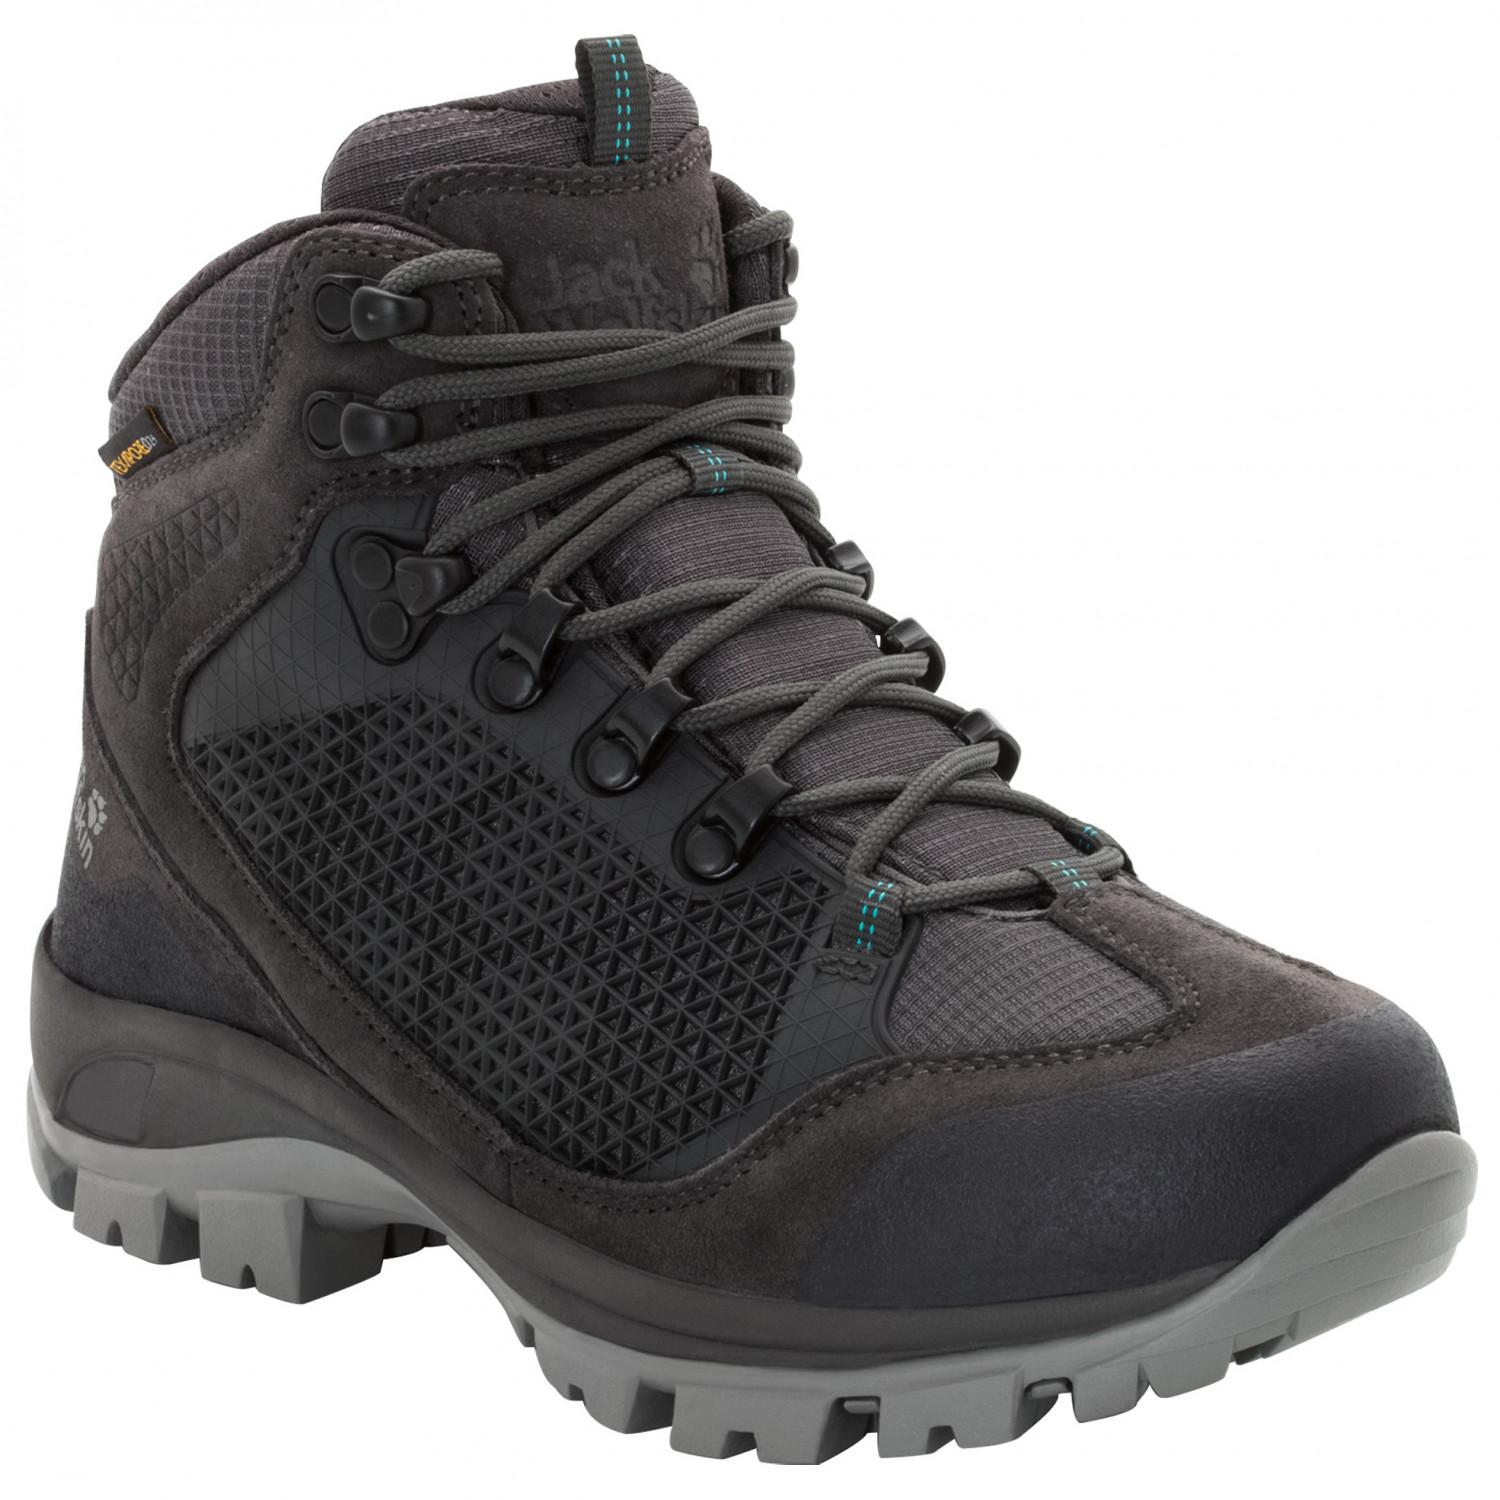 jack wolfskin all terrain pro texapore mid walking boots. Black Bedroom Furniture Sets. Home Design Ideas